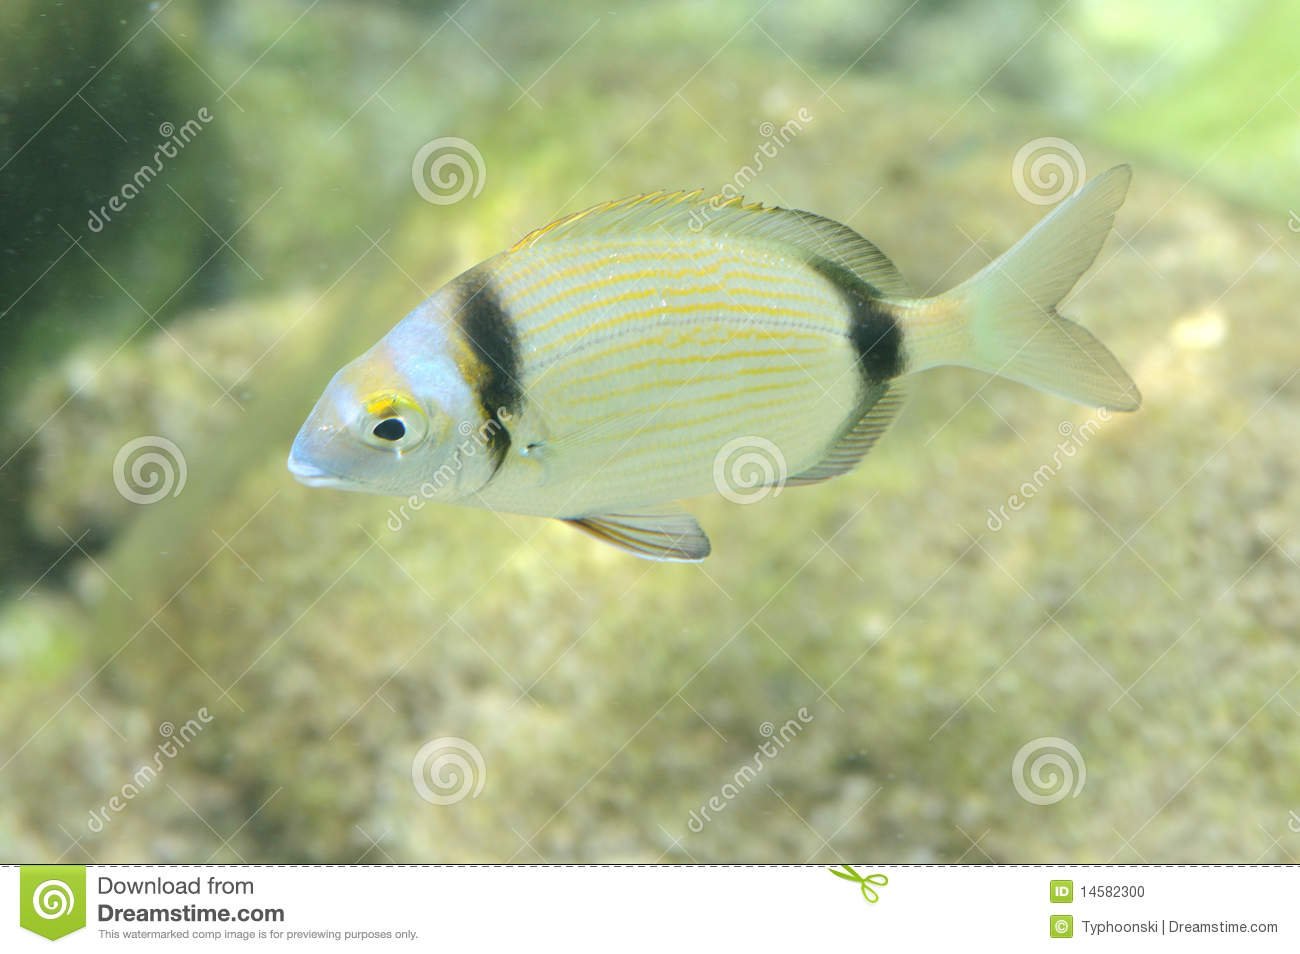 Underwater picture of a fish